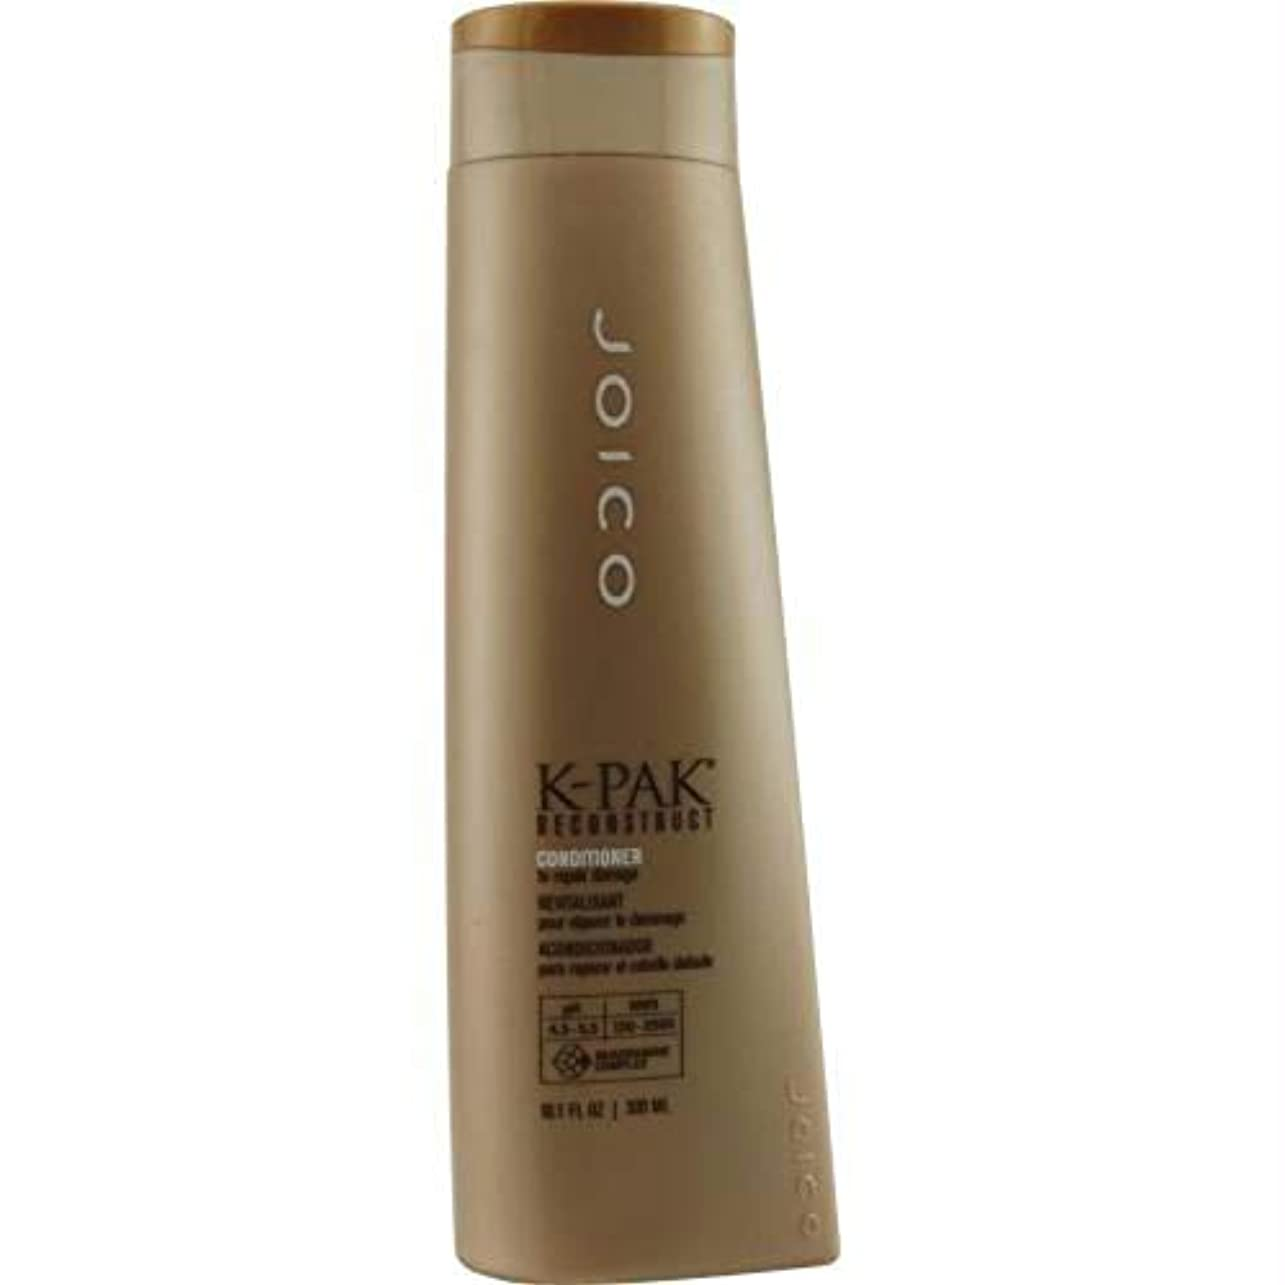 出撃者ちらつきずんぐりしたby Joico K PAK RECONSTRUCT DAILY CONDITIONER FOR DAMAGED HAIR 10.1 OZ by JOICO